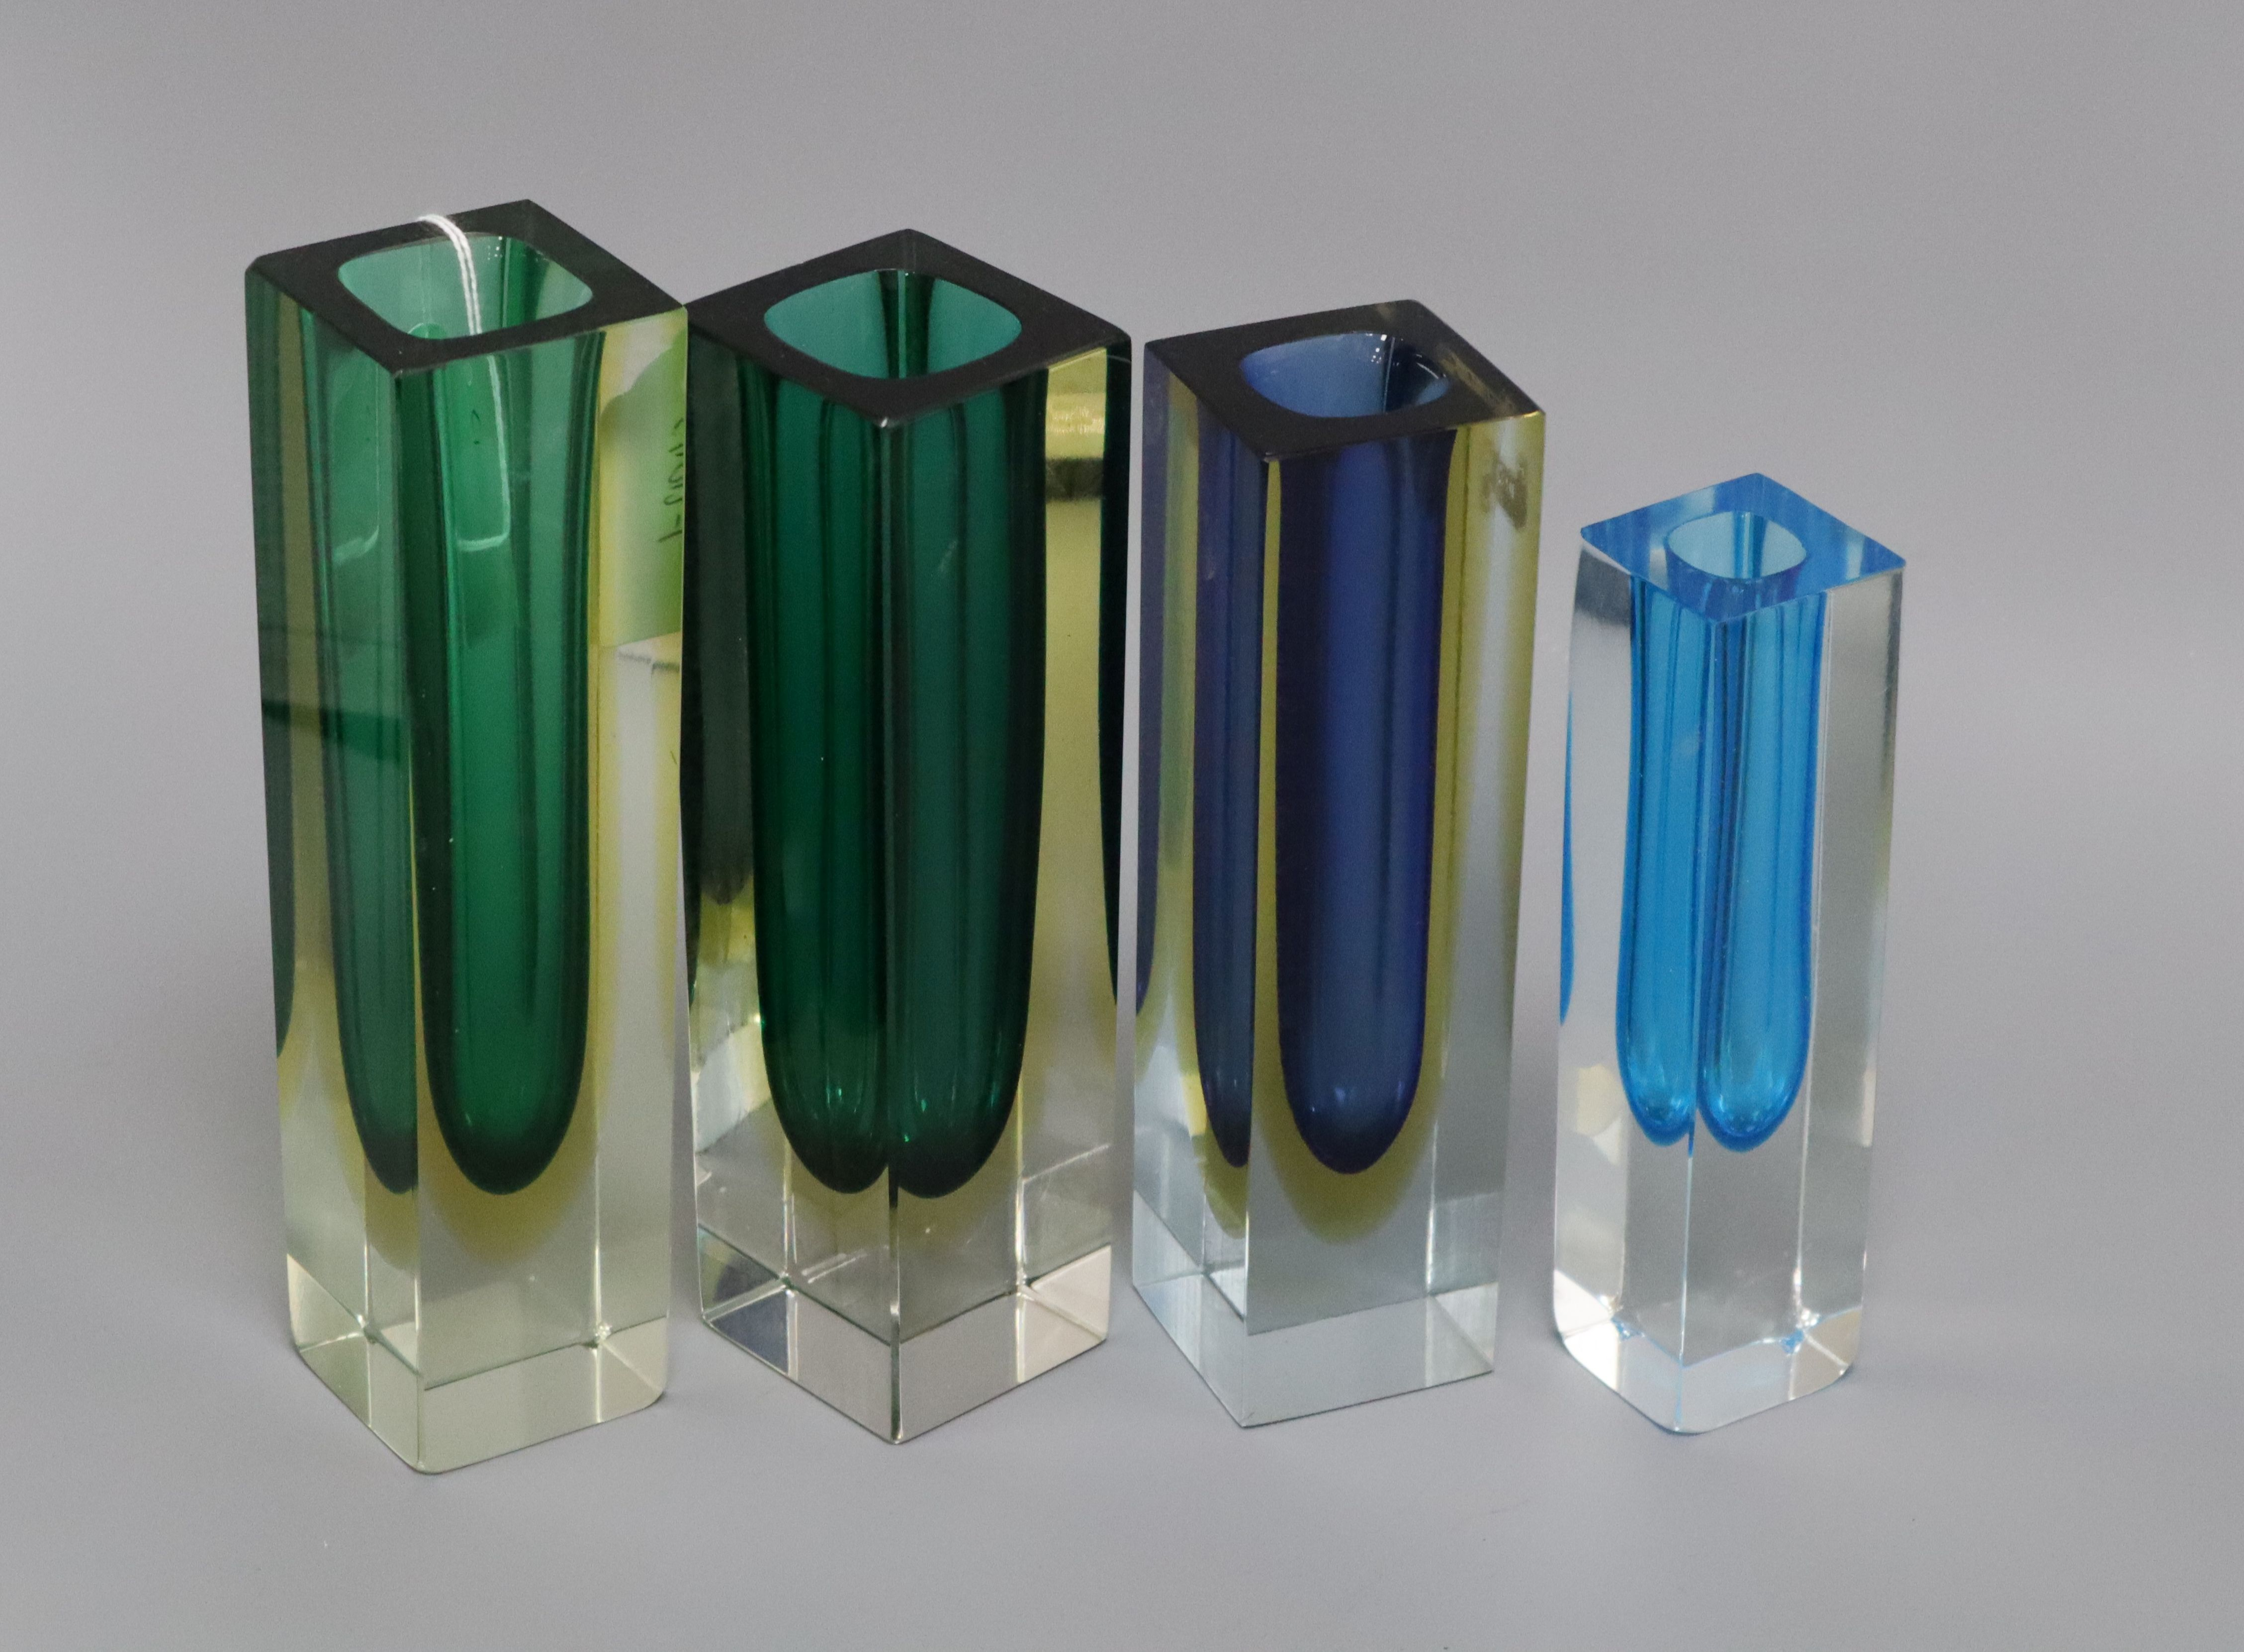 Lot 6 - Four Murano glass vases, c.1960/1970's, vintage from Alessandro Mandruzzalo factory, Venice